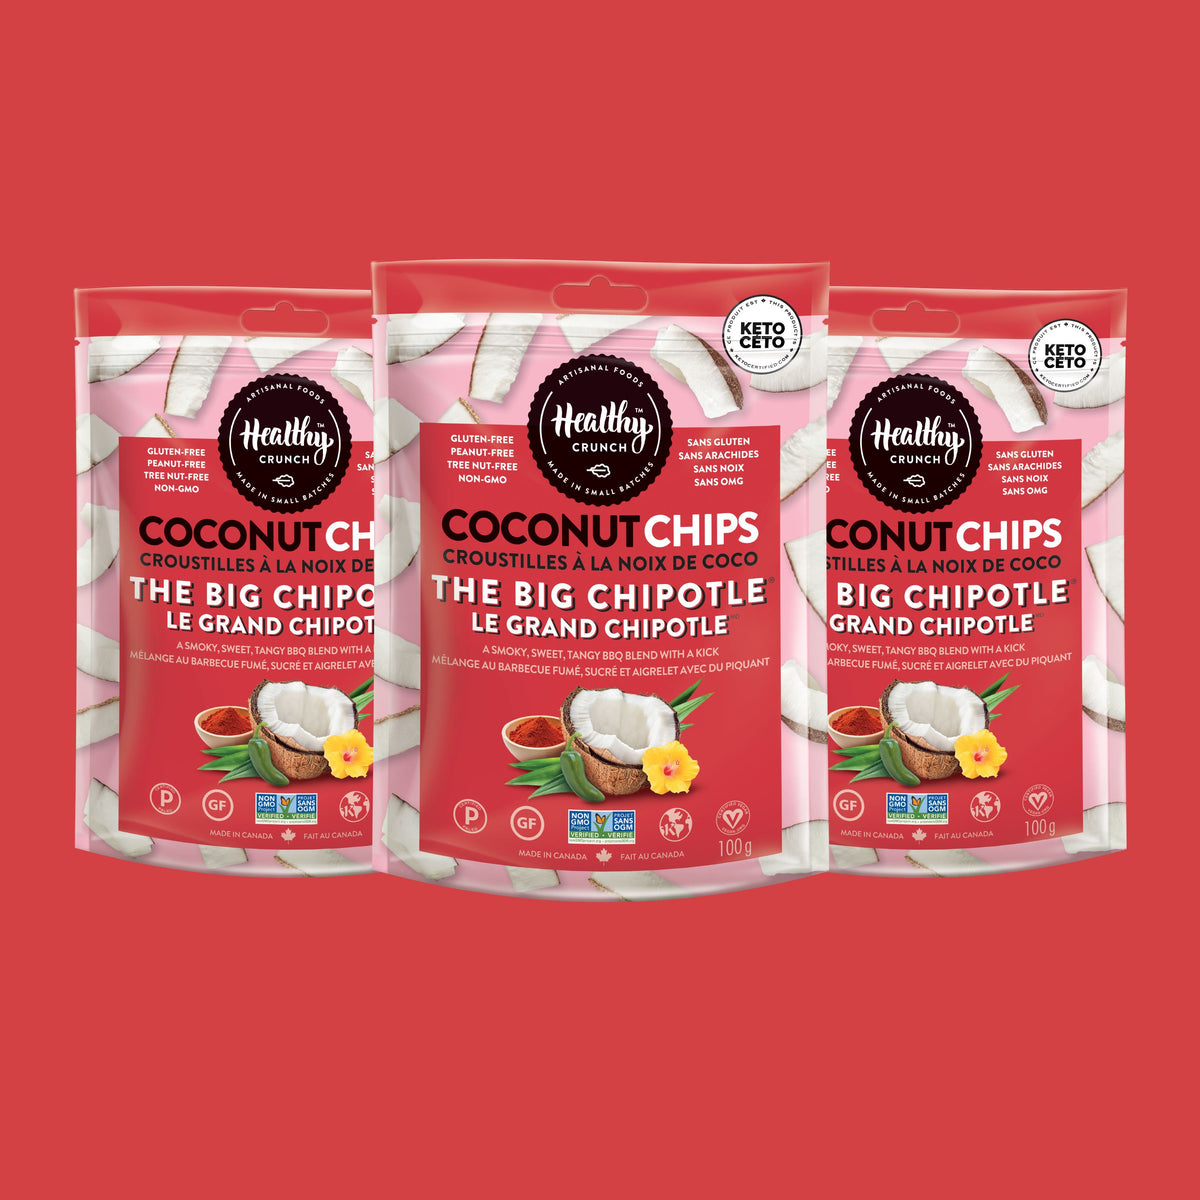 The Big Chipotle Coconut Chips